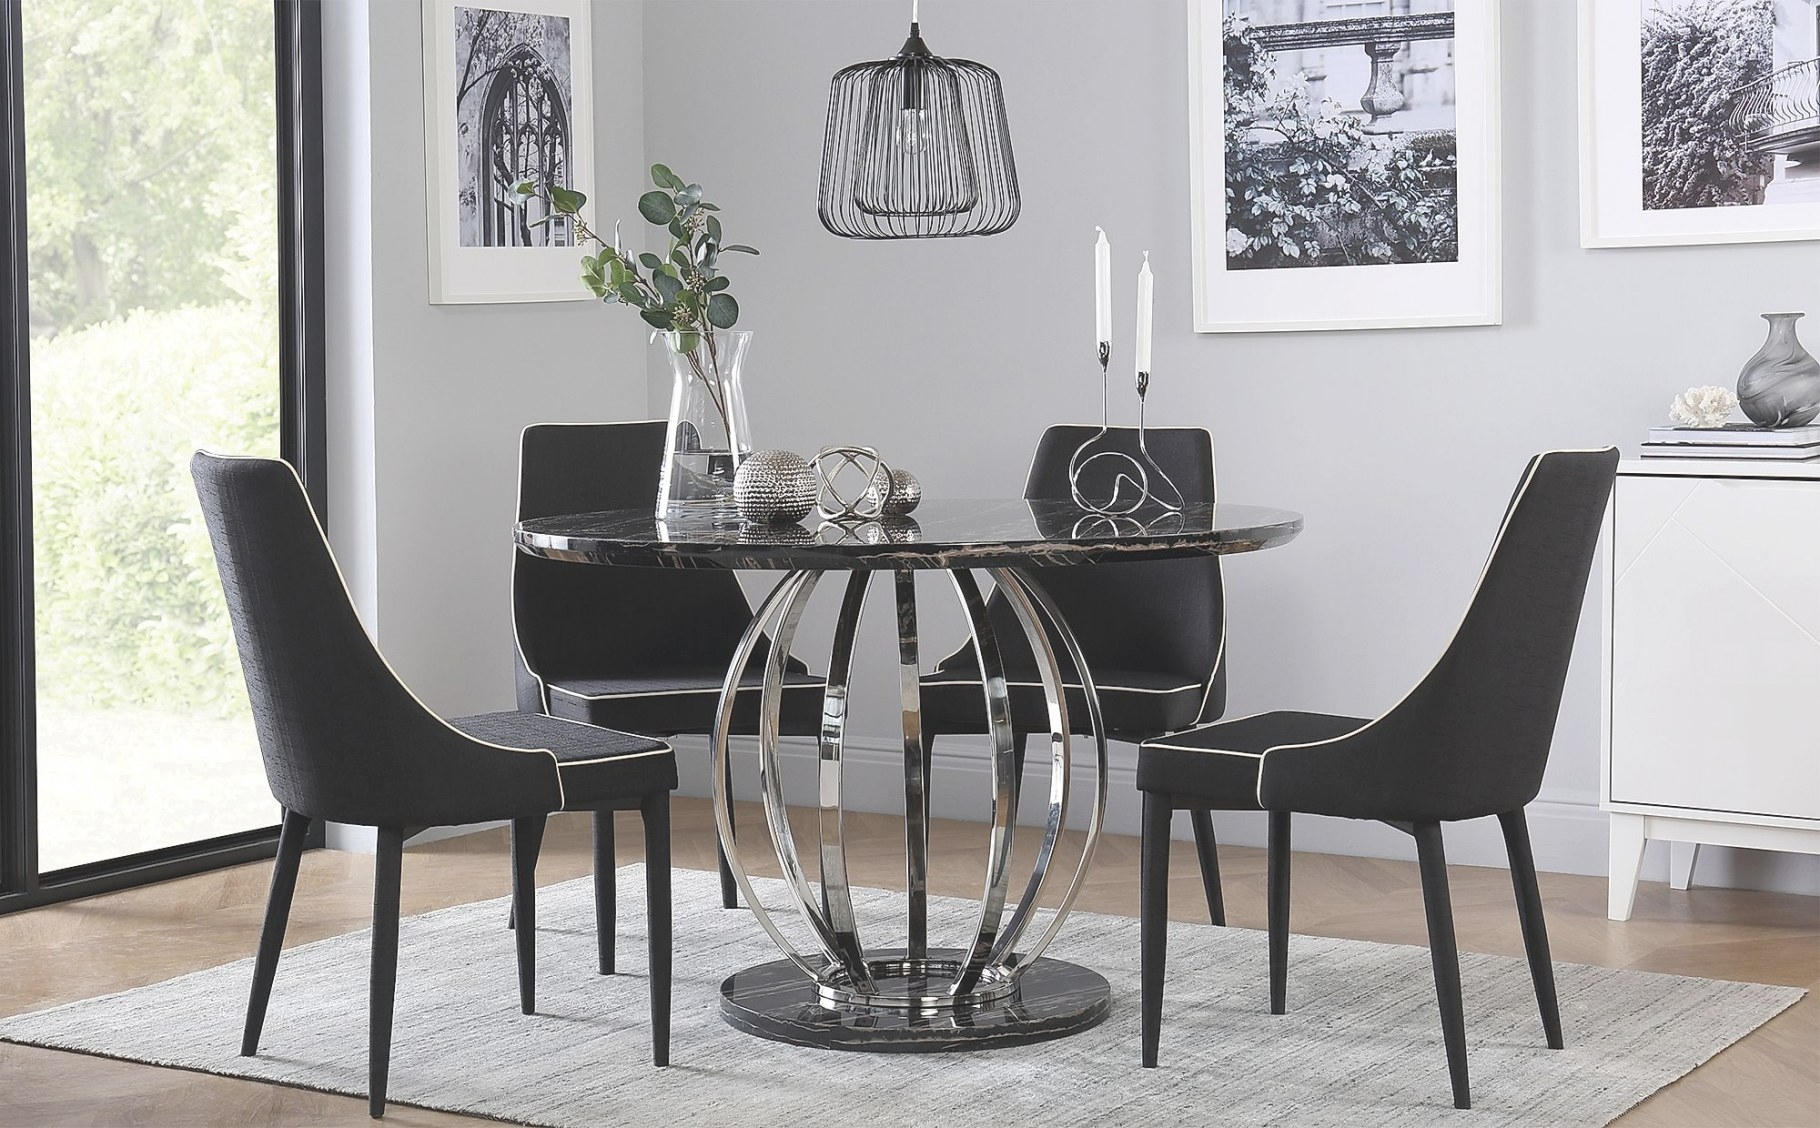 Savoy Round Black Marble And Chrome Dining Table With 4 pertaining to Round Marble Dining Table